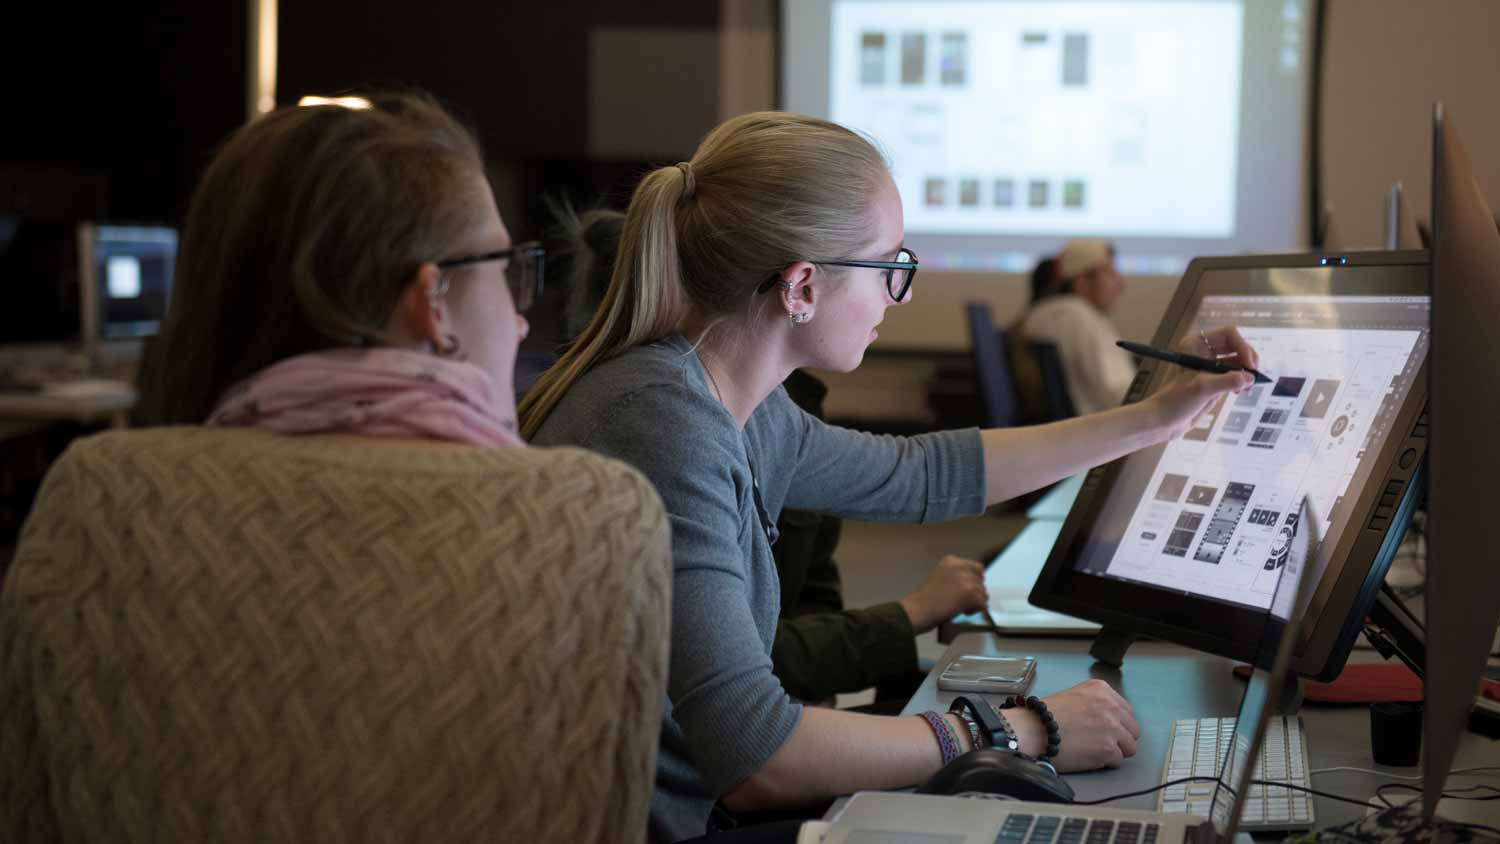 Two female students creating digital art